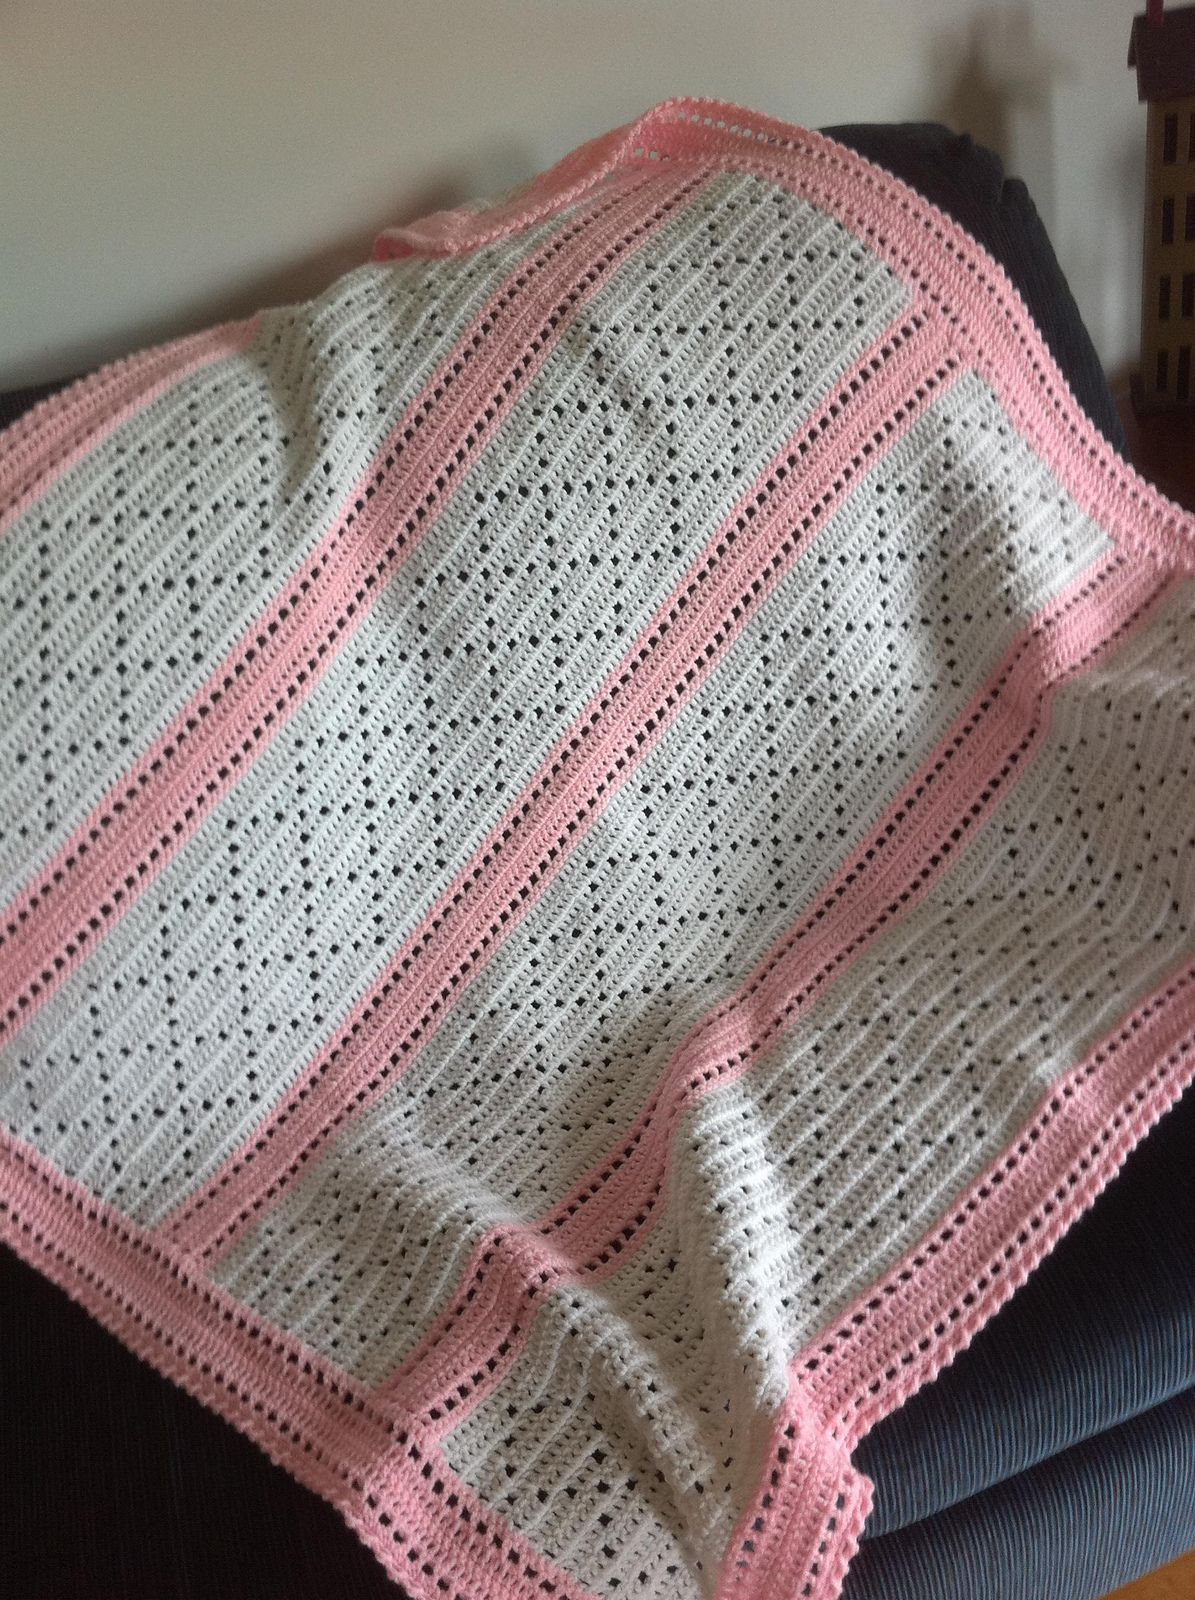 Ravelry: Lazy Daisy Blanket by Mary Jane Protus Would be a great way ...